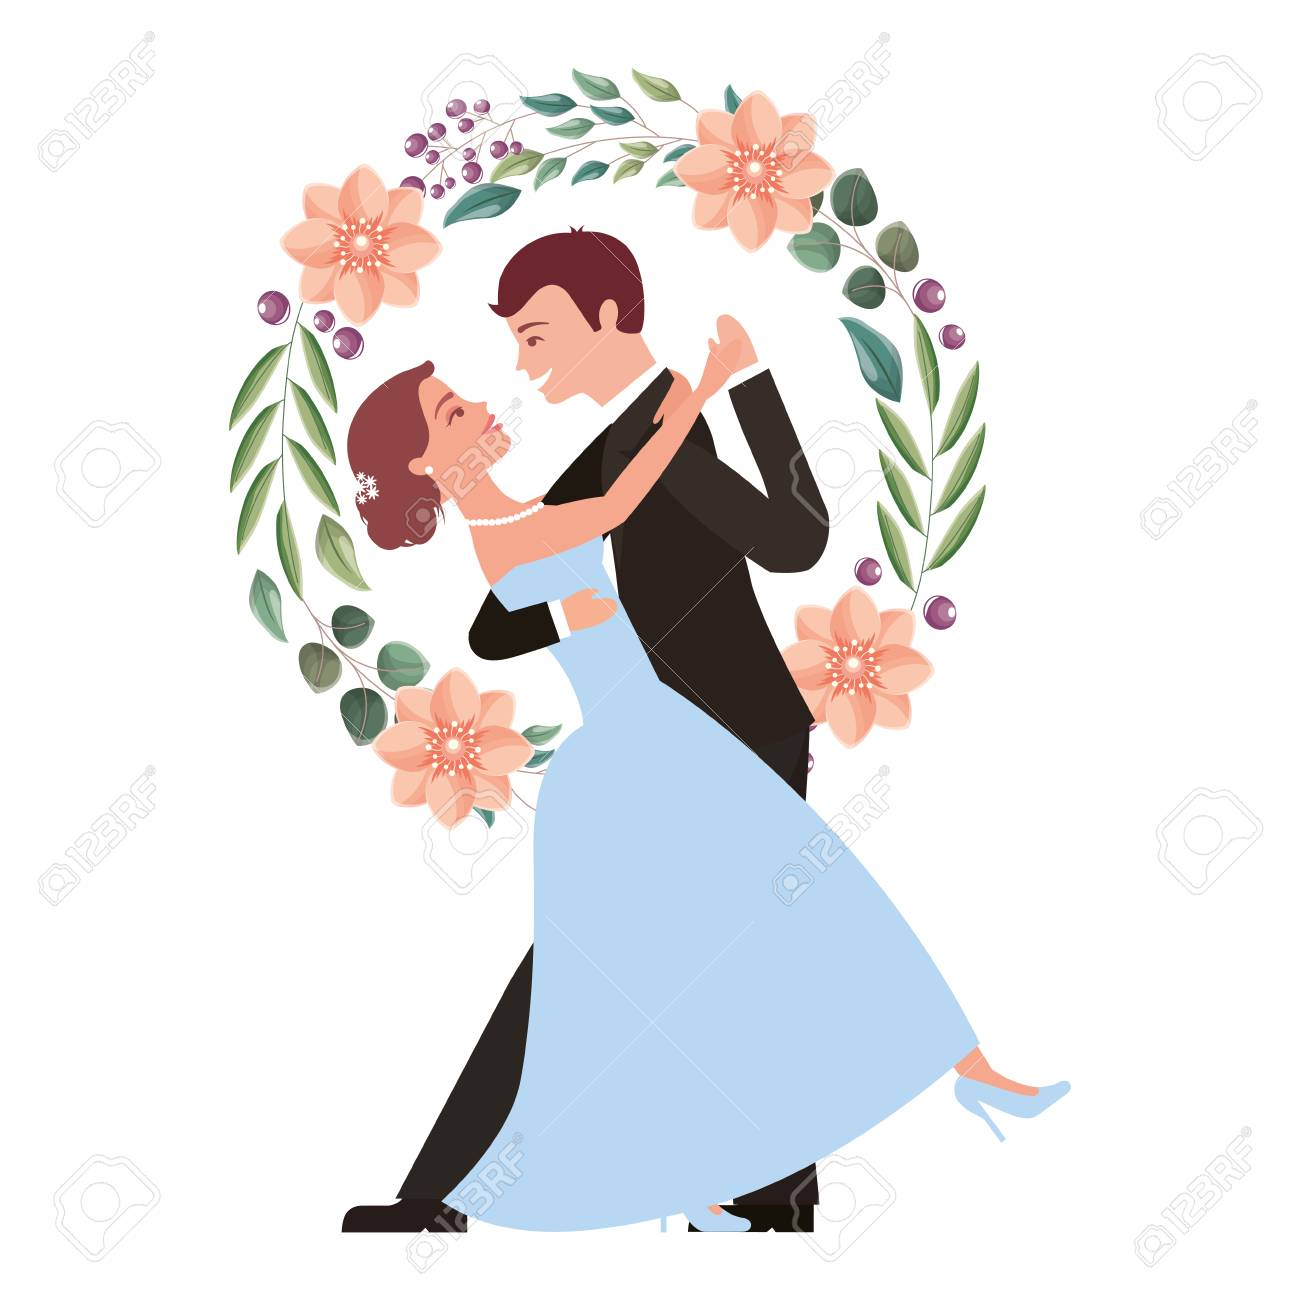 bride and groom and their first dance wedding day wreath flowers vector illustration - 104525114